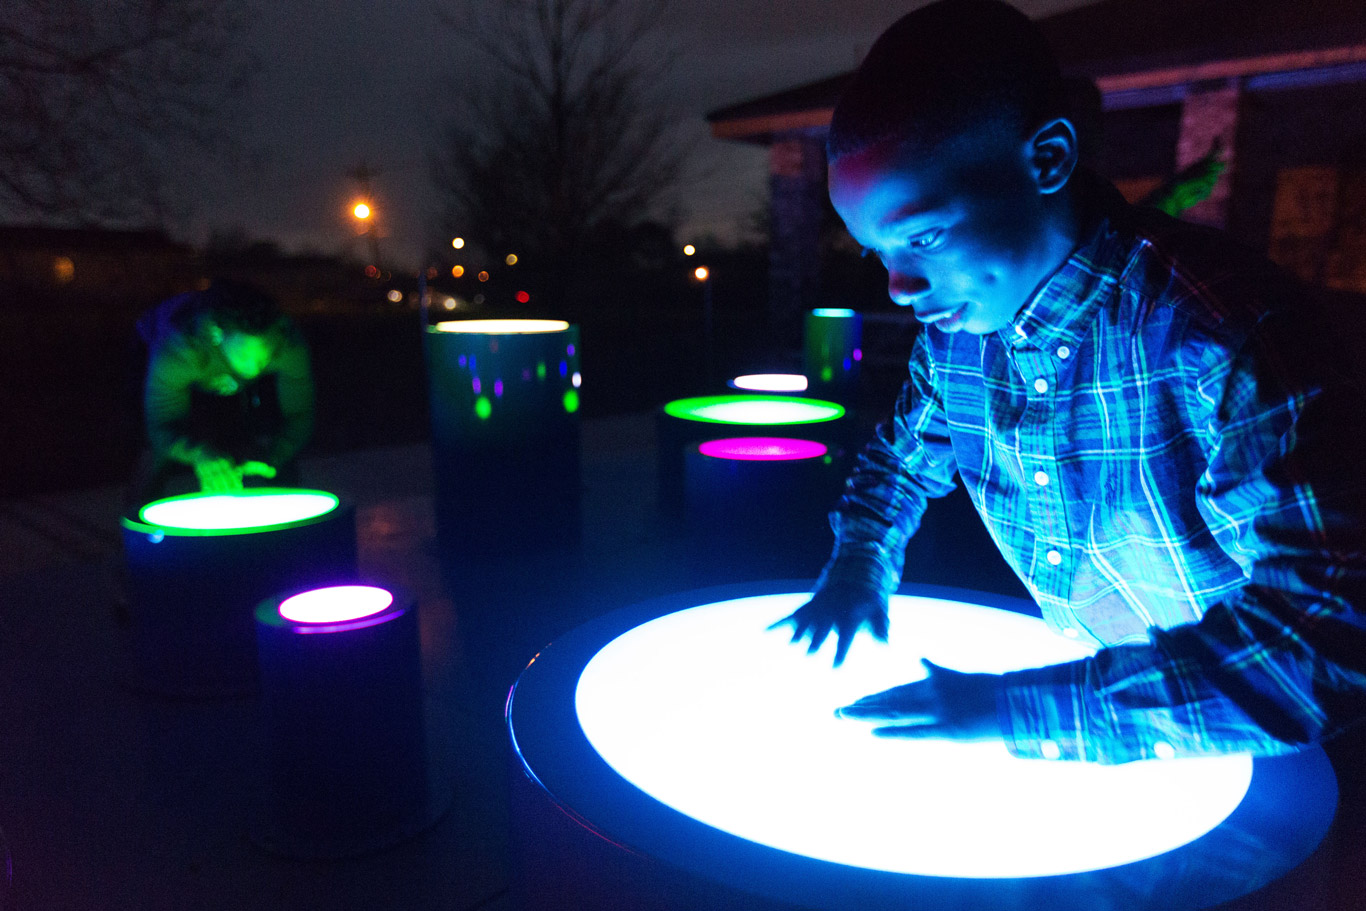 Boy plays on glow-in-the-dark drums